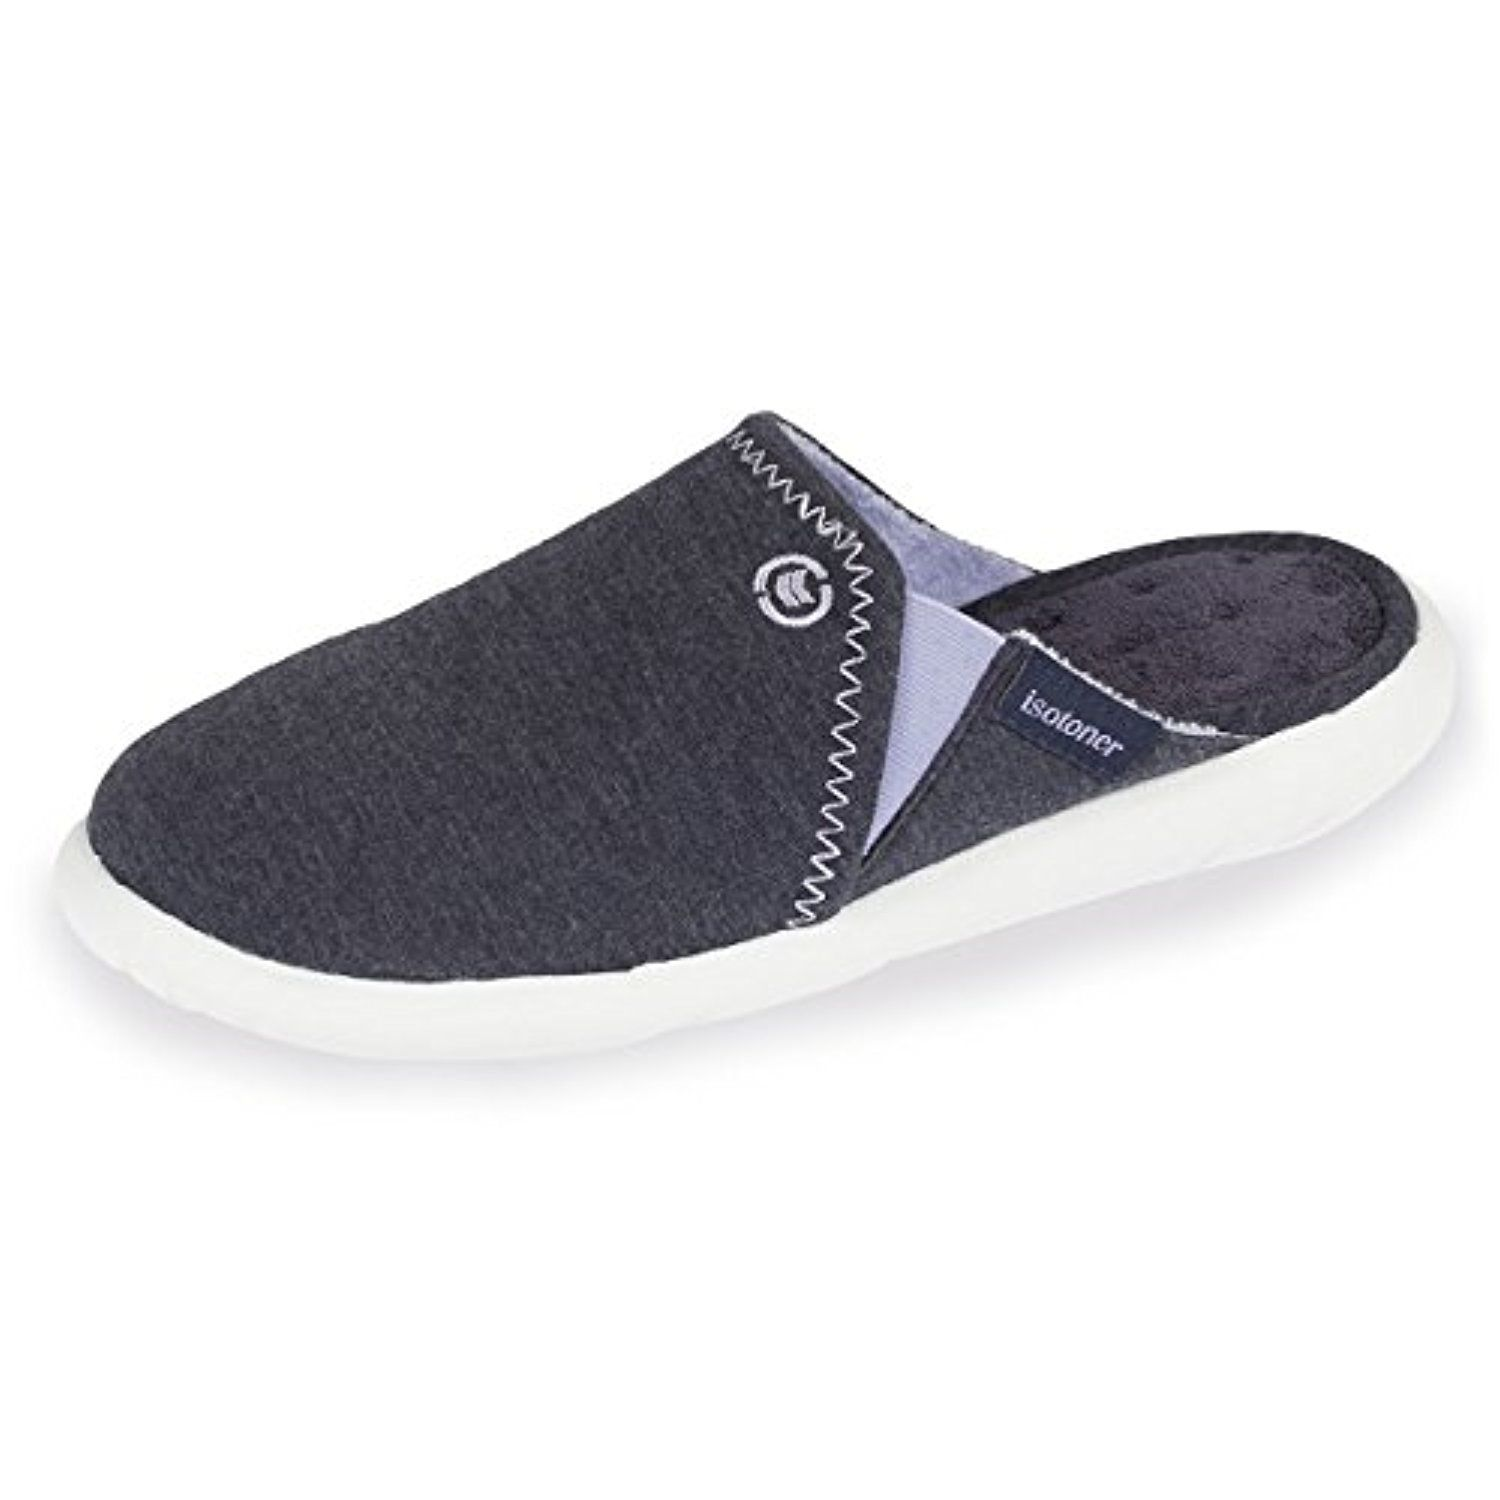 Isotoner Chaussons Mules Femme Ultra Légers 2018 - Soldes! Allure Chaussure 6fdc8ffb77ed